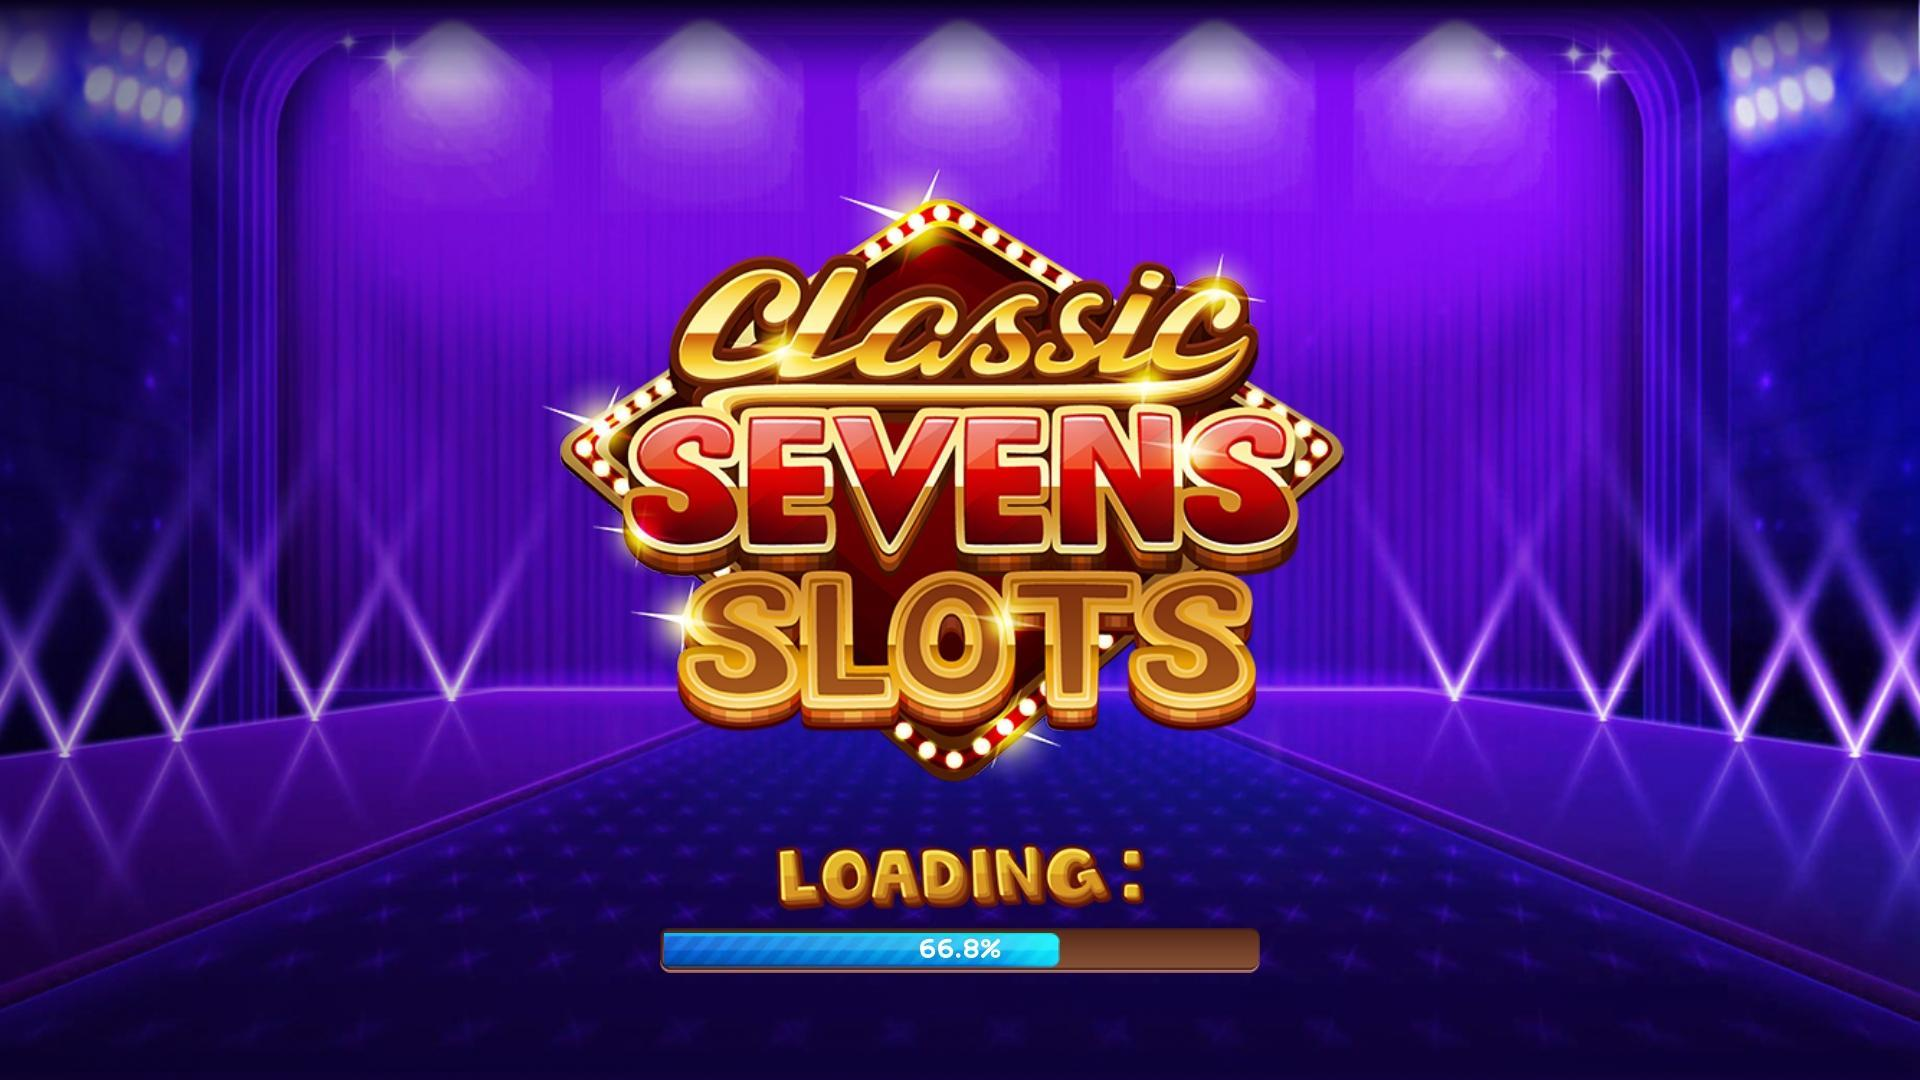 Sevens Slots Lucky 7 Free Casino For Android Apk Download